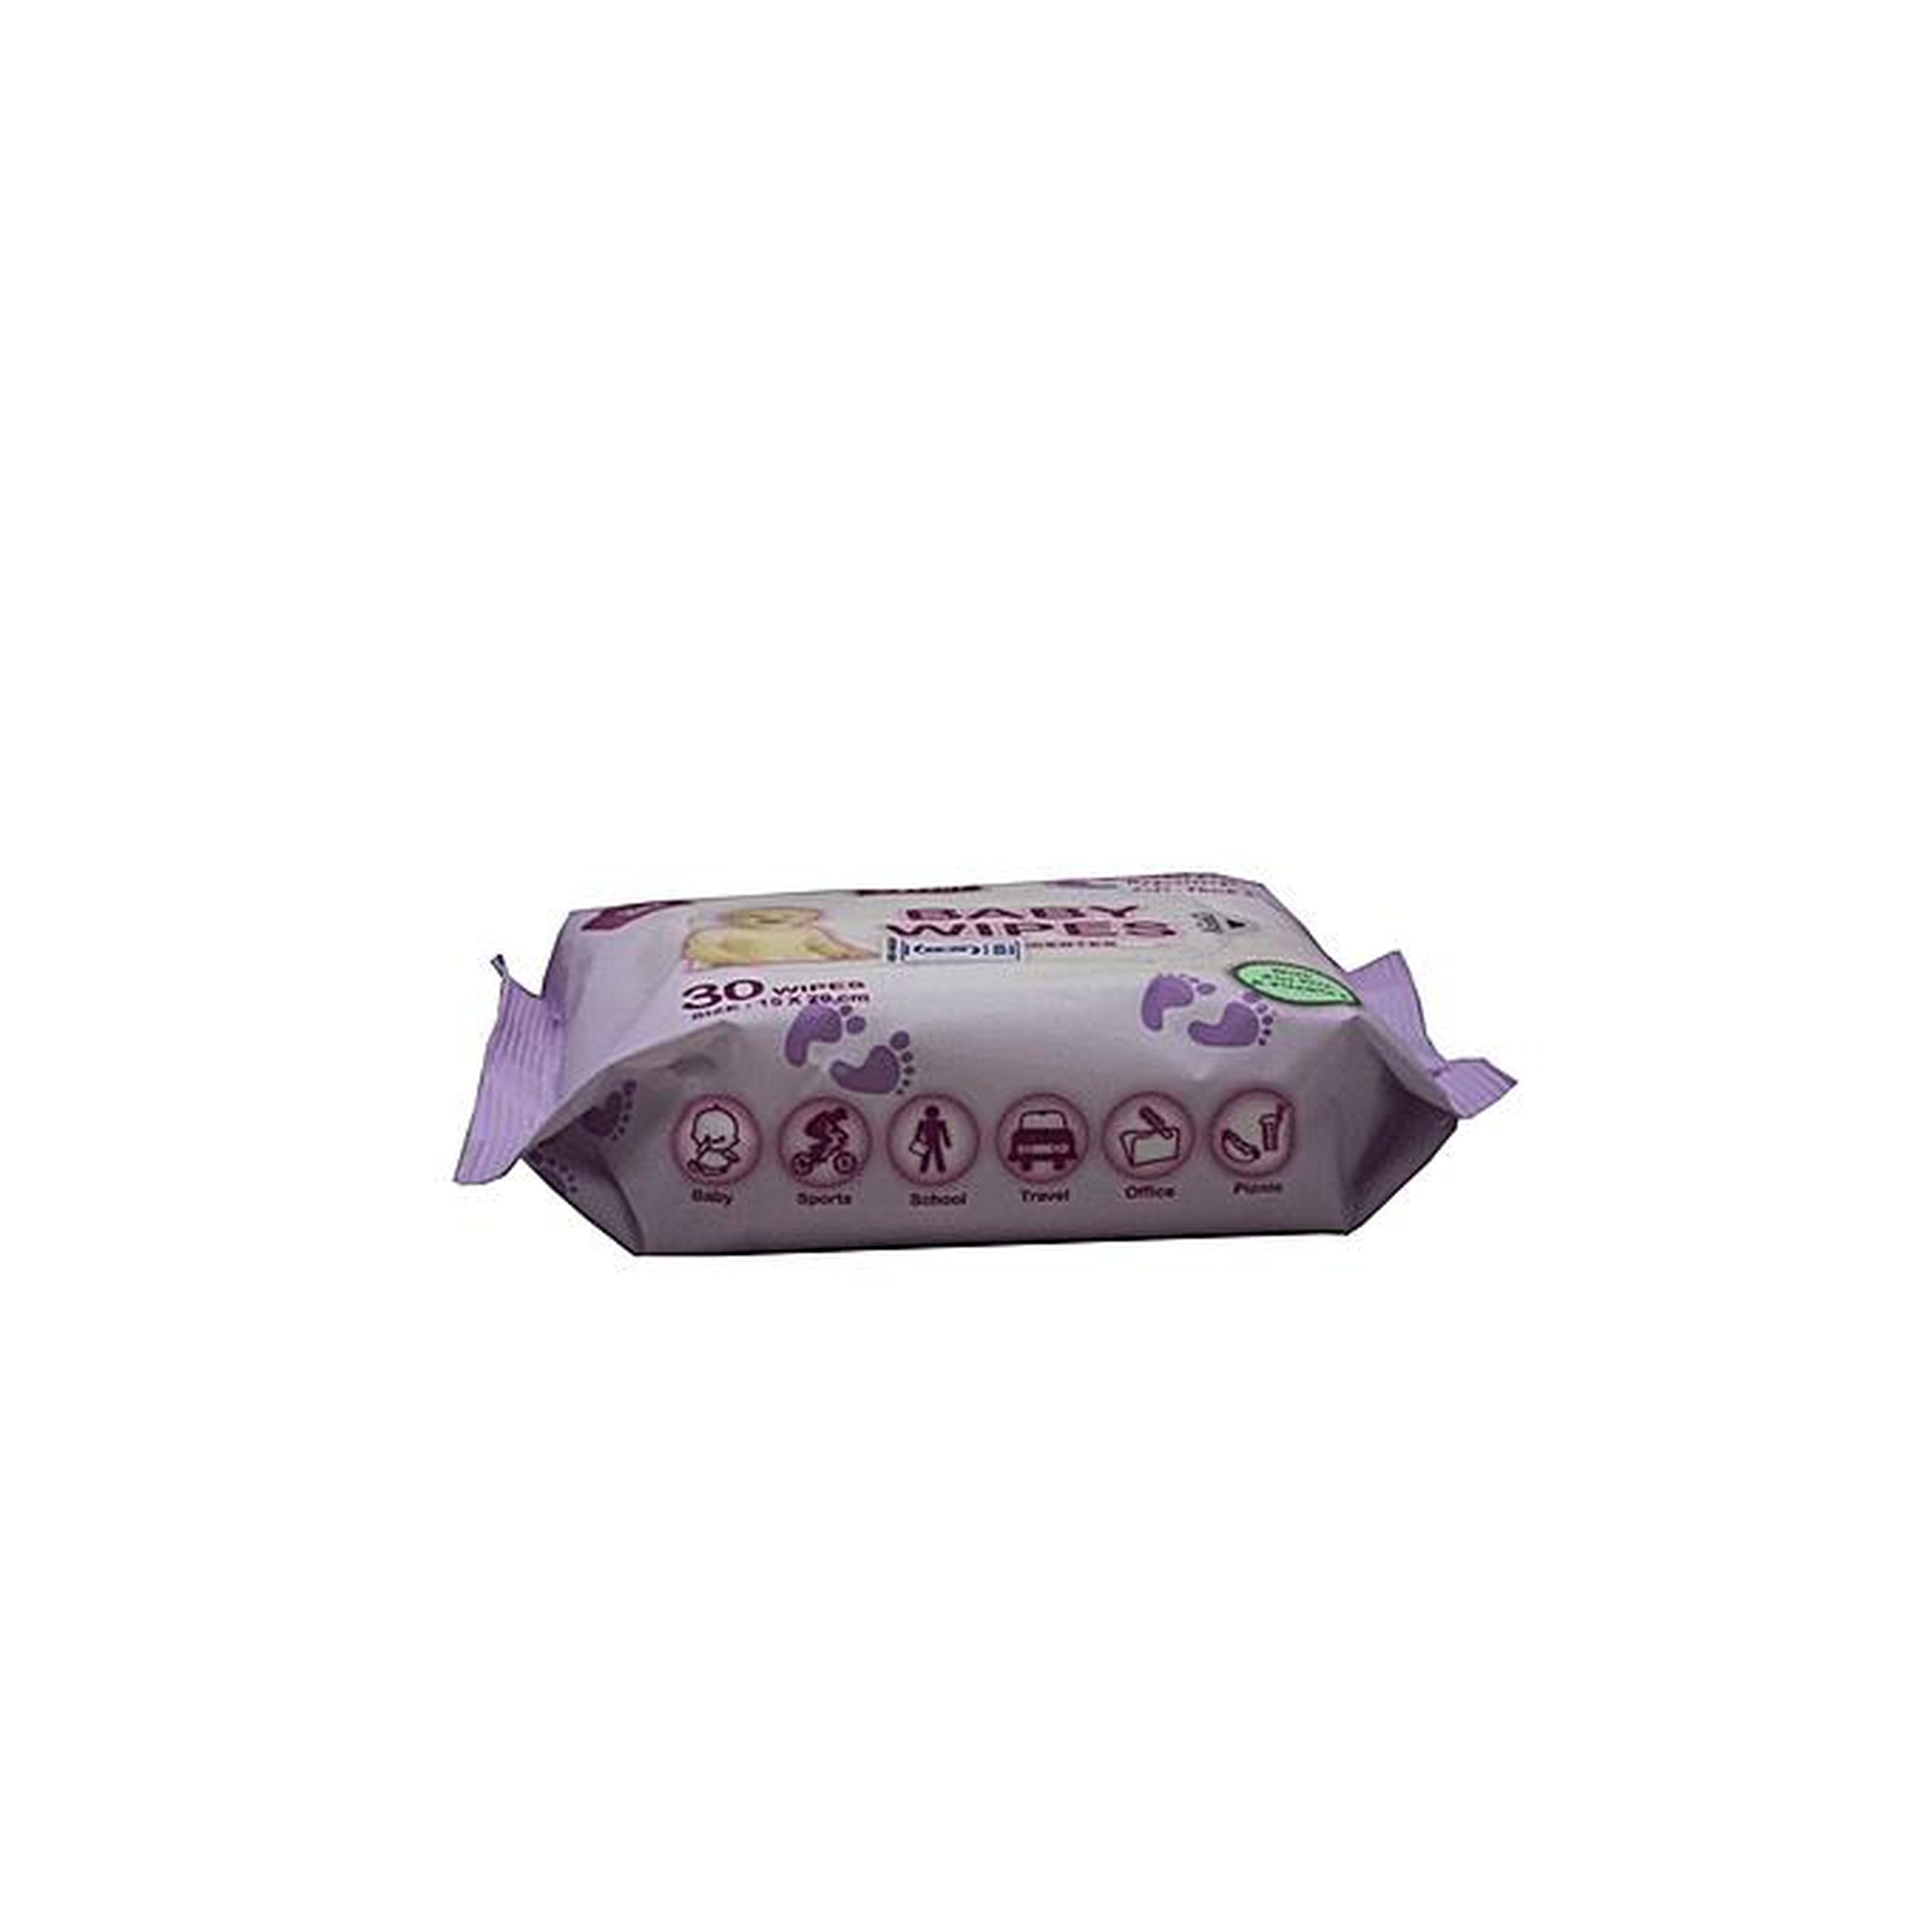 Aryuv baby wipes travel pack 30's-Wipes-Mother and Baby Shop Kenya's #1 Online Baby Shop